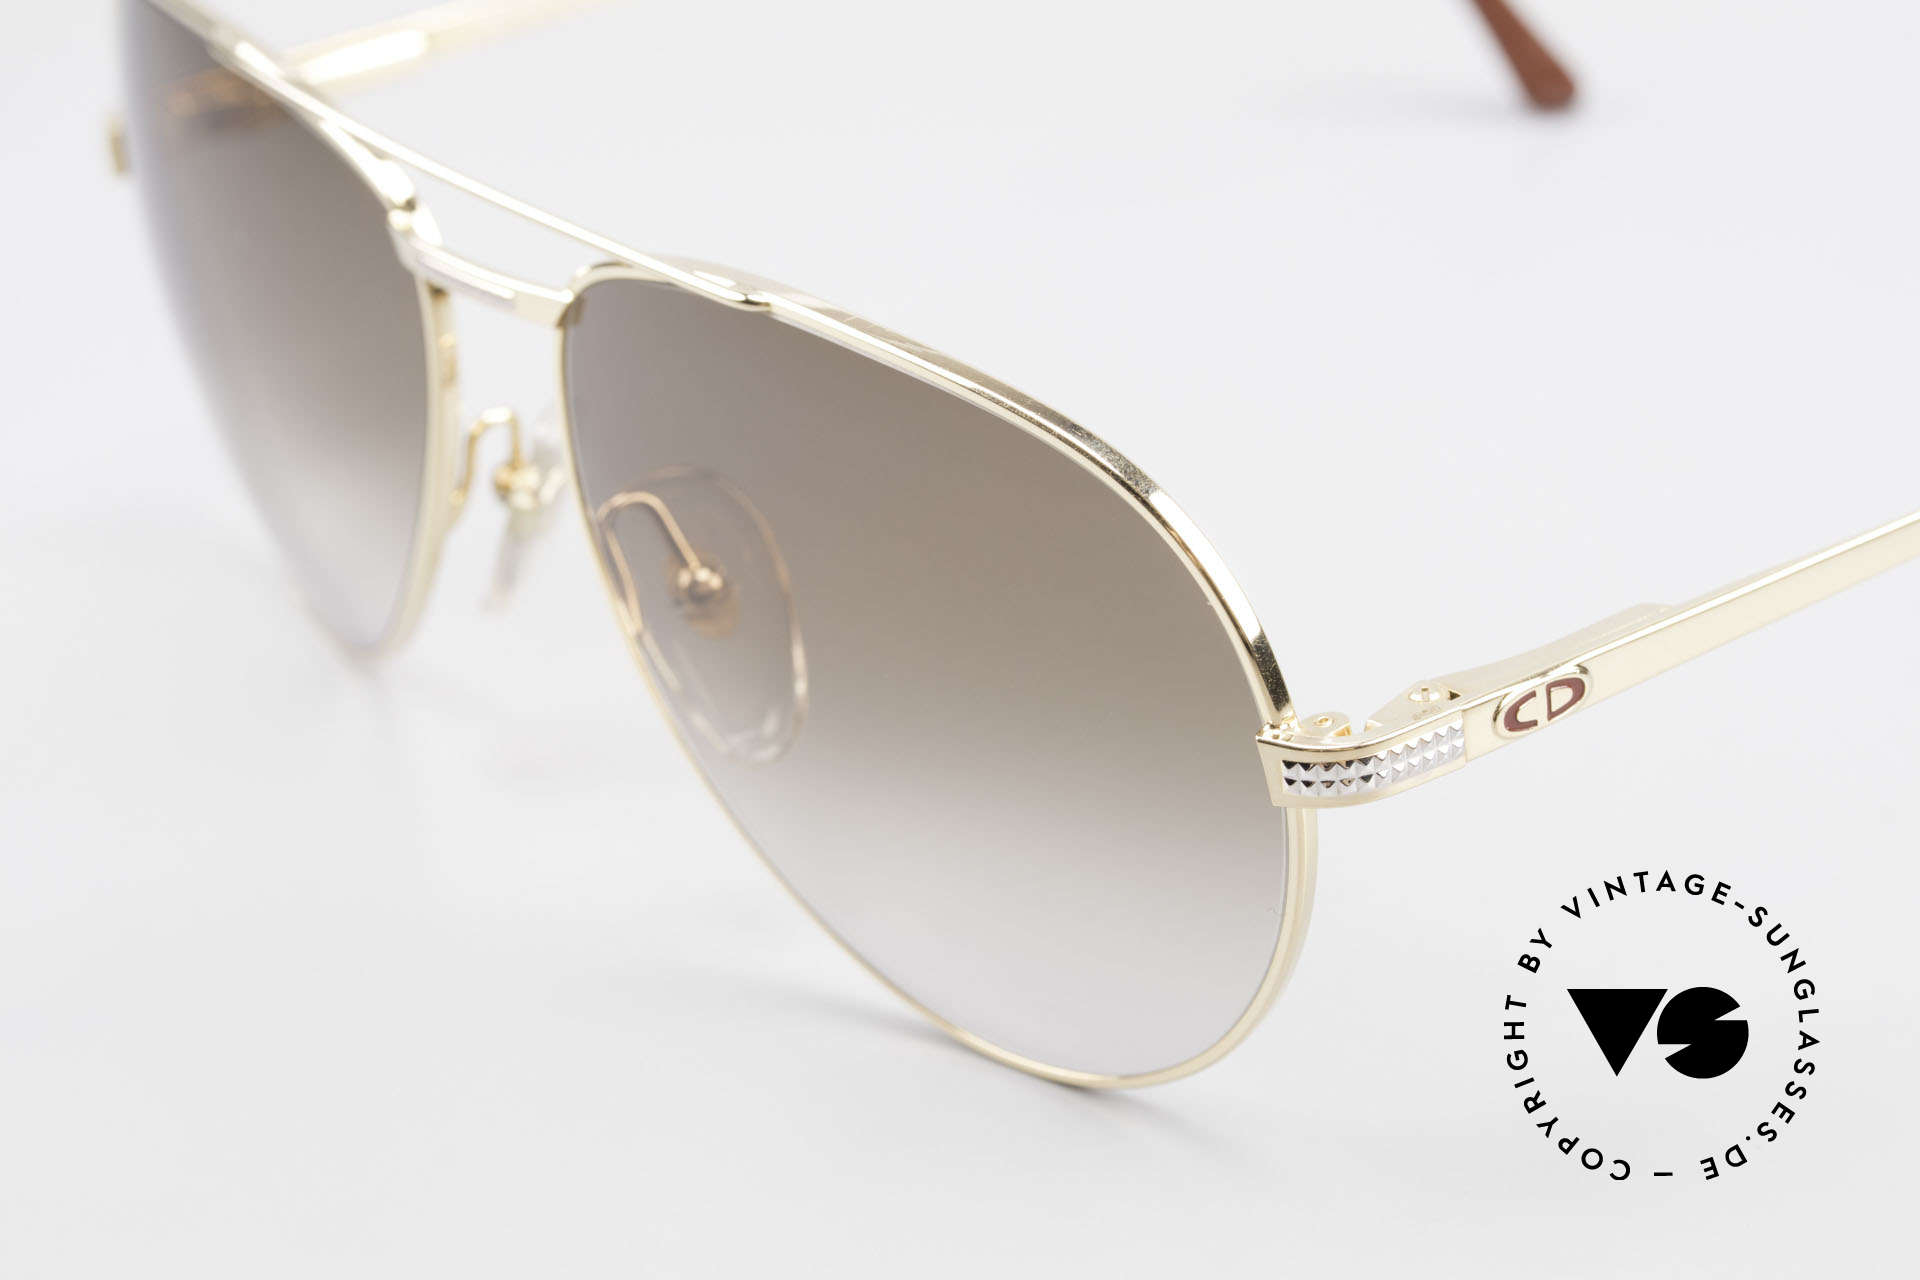 Christian Dior 2780 Gold-Plated 90's Aviator Frame, new old stock (like all our vintage Dior glasses), Made for Men